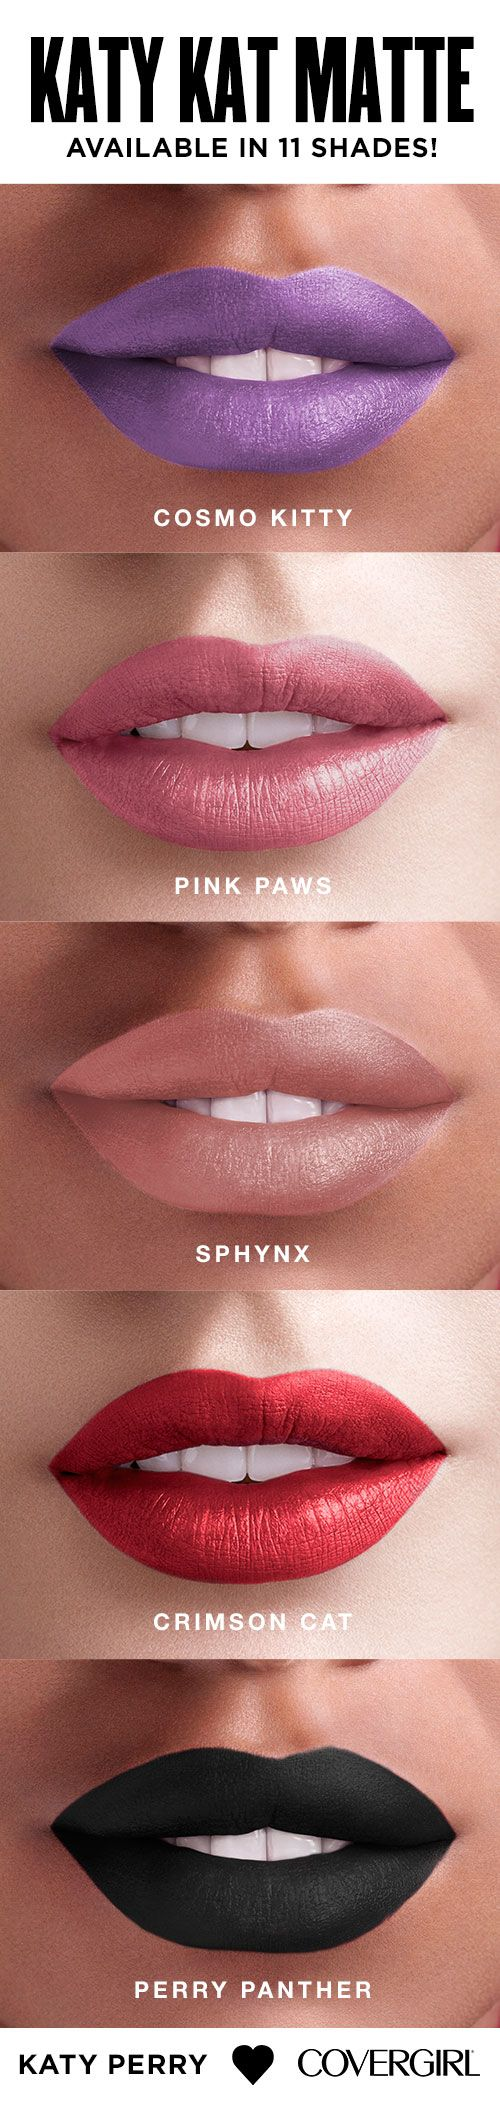 11 Must Have Shades In One Demi Matte Lipstick That S New Katy Kat Matte From Katy Perry And Covergirl What S Your Favo Skin Makeup Katy Kat Matte Lip Makeup